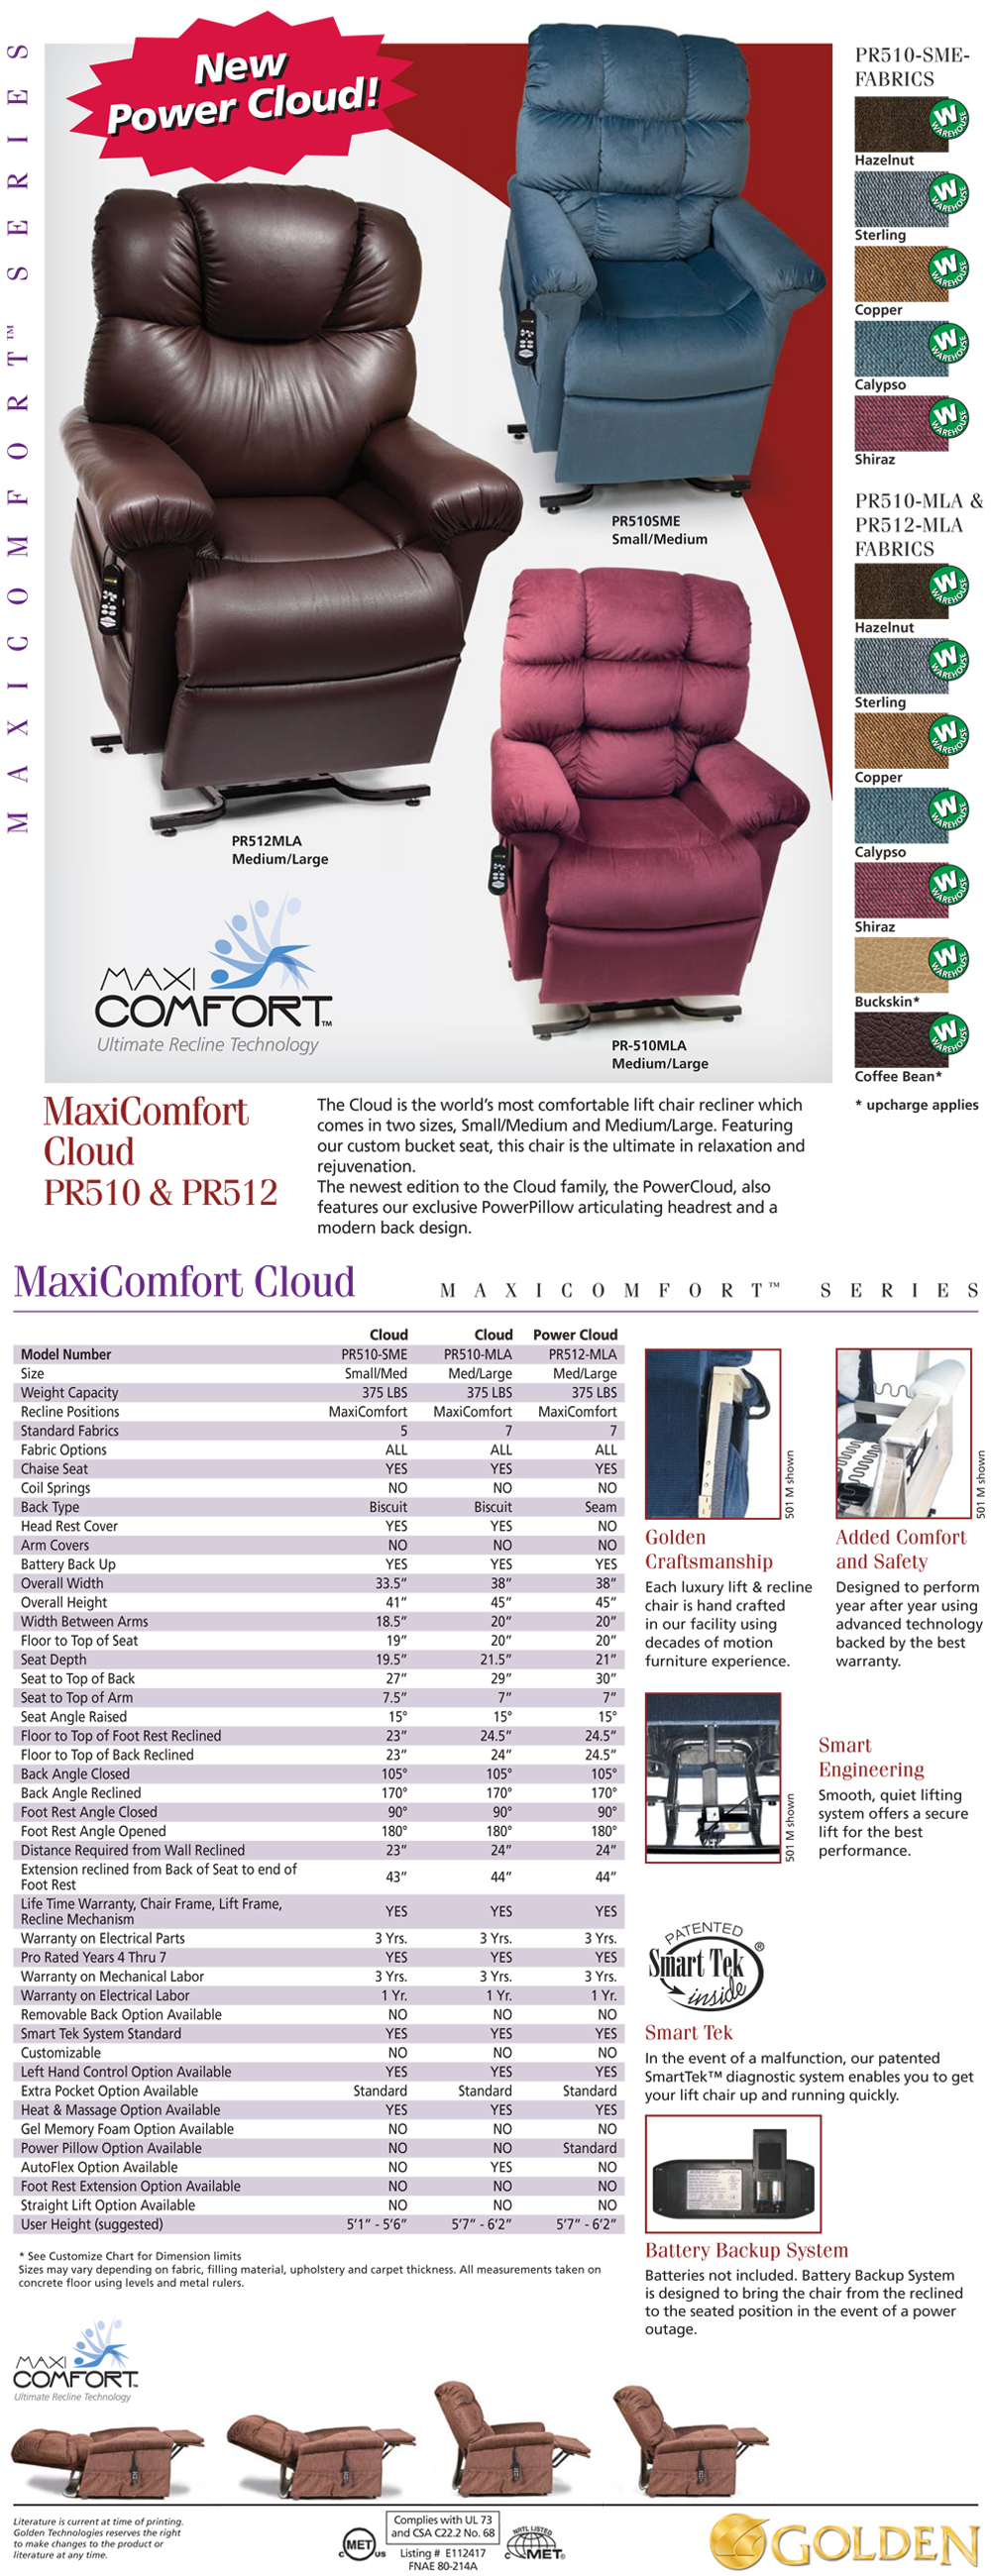 Golden-PR510-Cloud-Liftchair-Recliner-sale